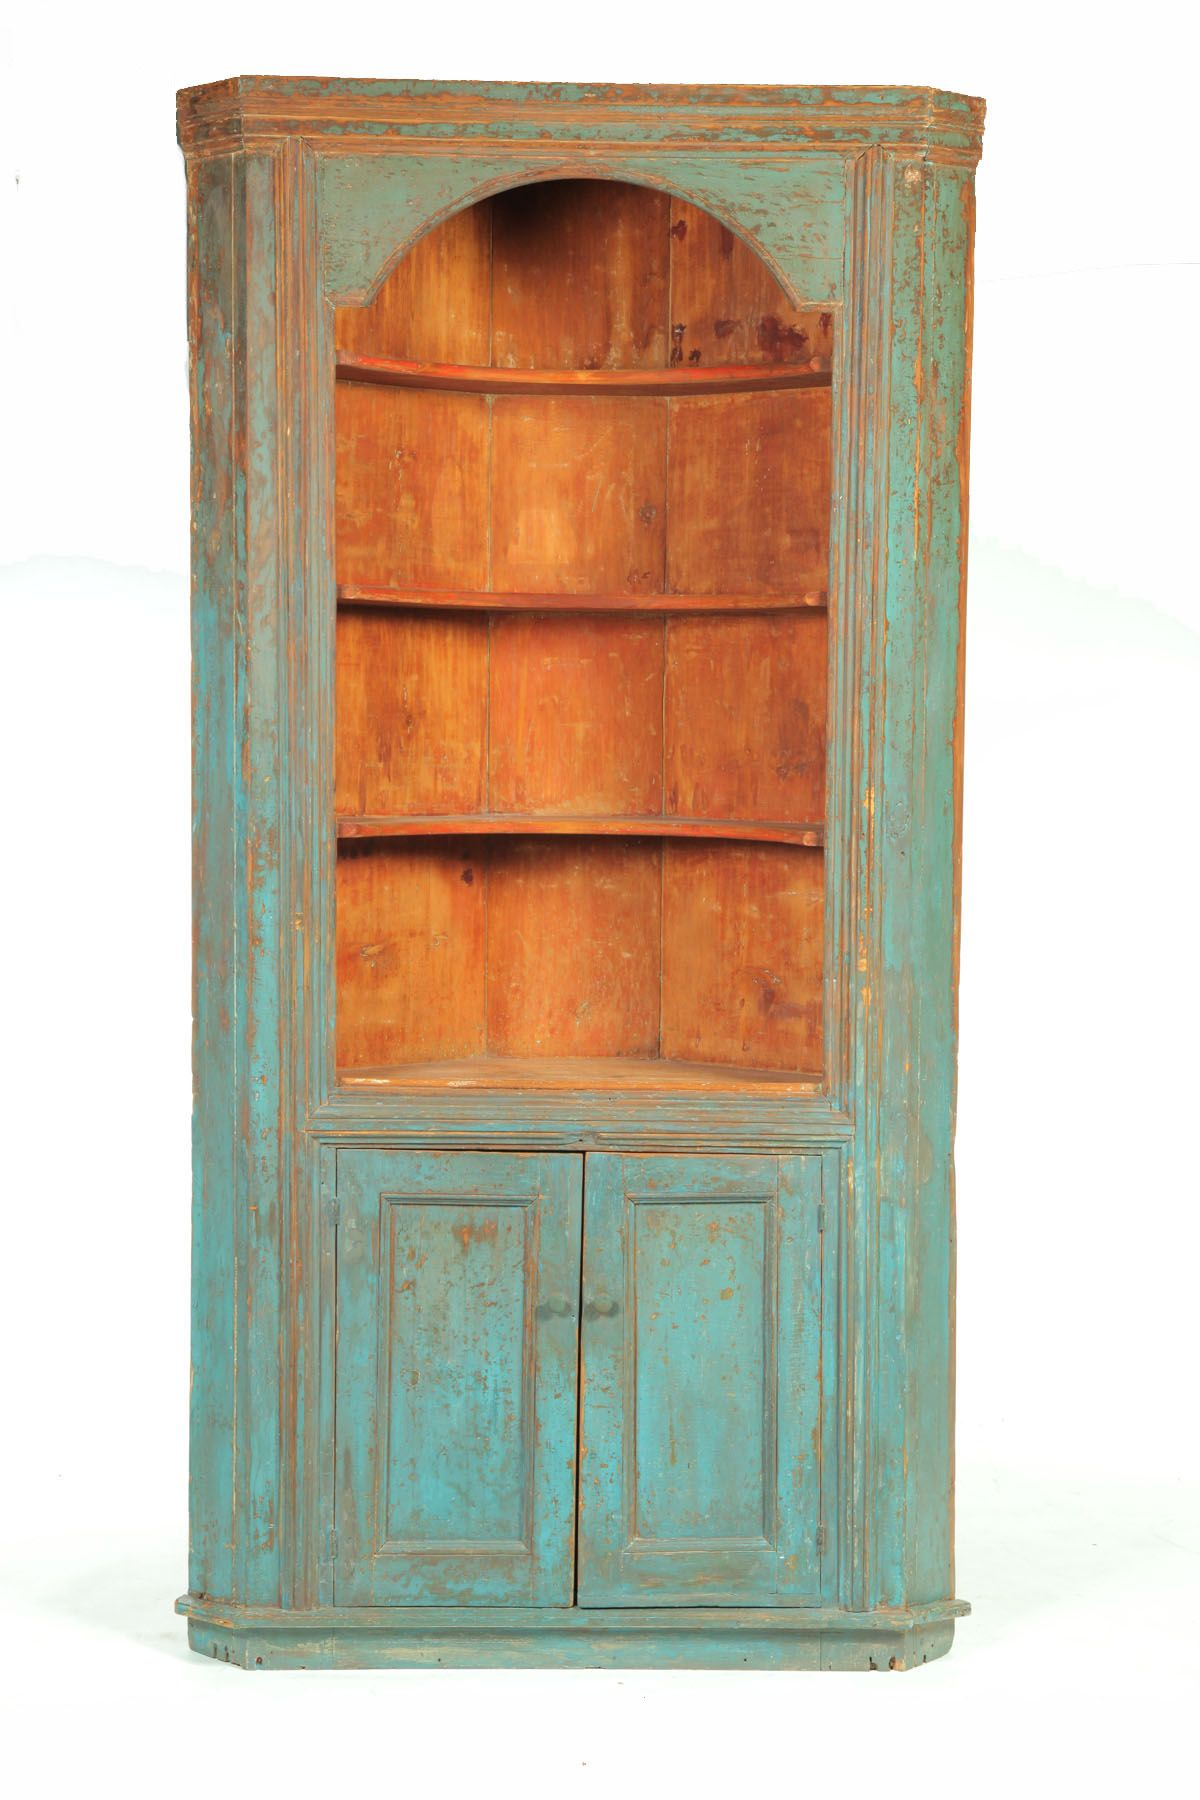 Pine corner cupboard with old blue paint, early 19th C., Garth's Auctions - Pine Corner Cupboard With Old Blue Paint, Early 19th C., Garth's